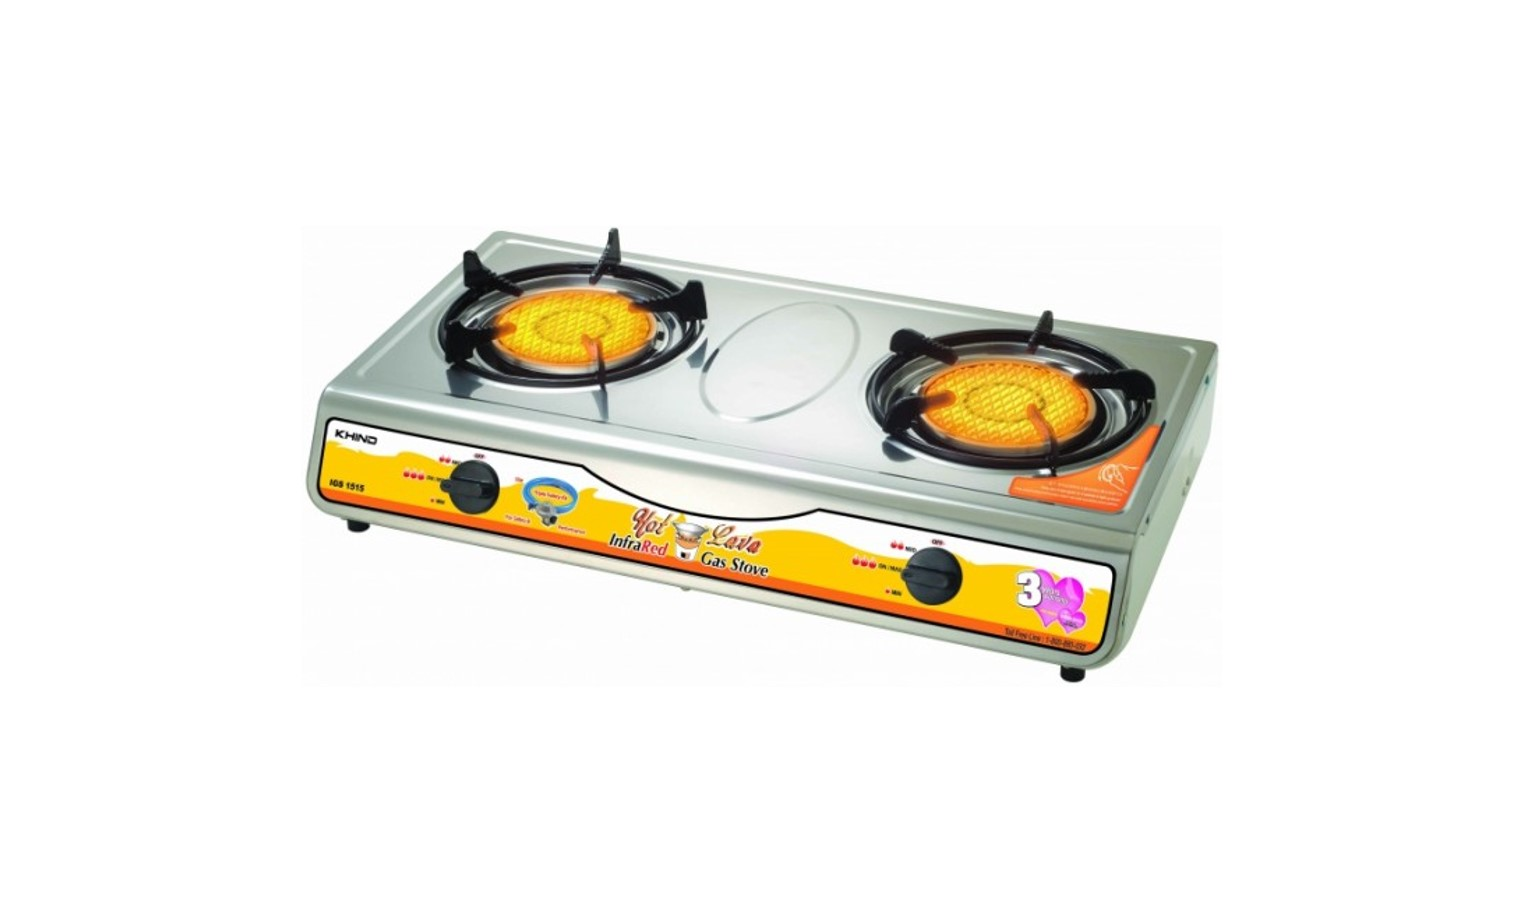 Khind IGS1515 Infrared Hot Lava Gas Stove - Stainless Steel